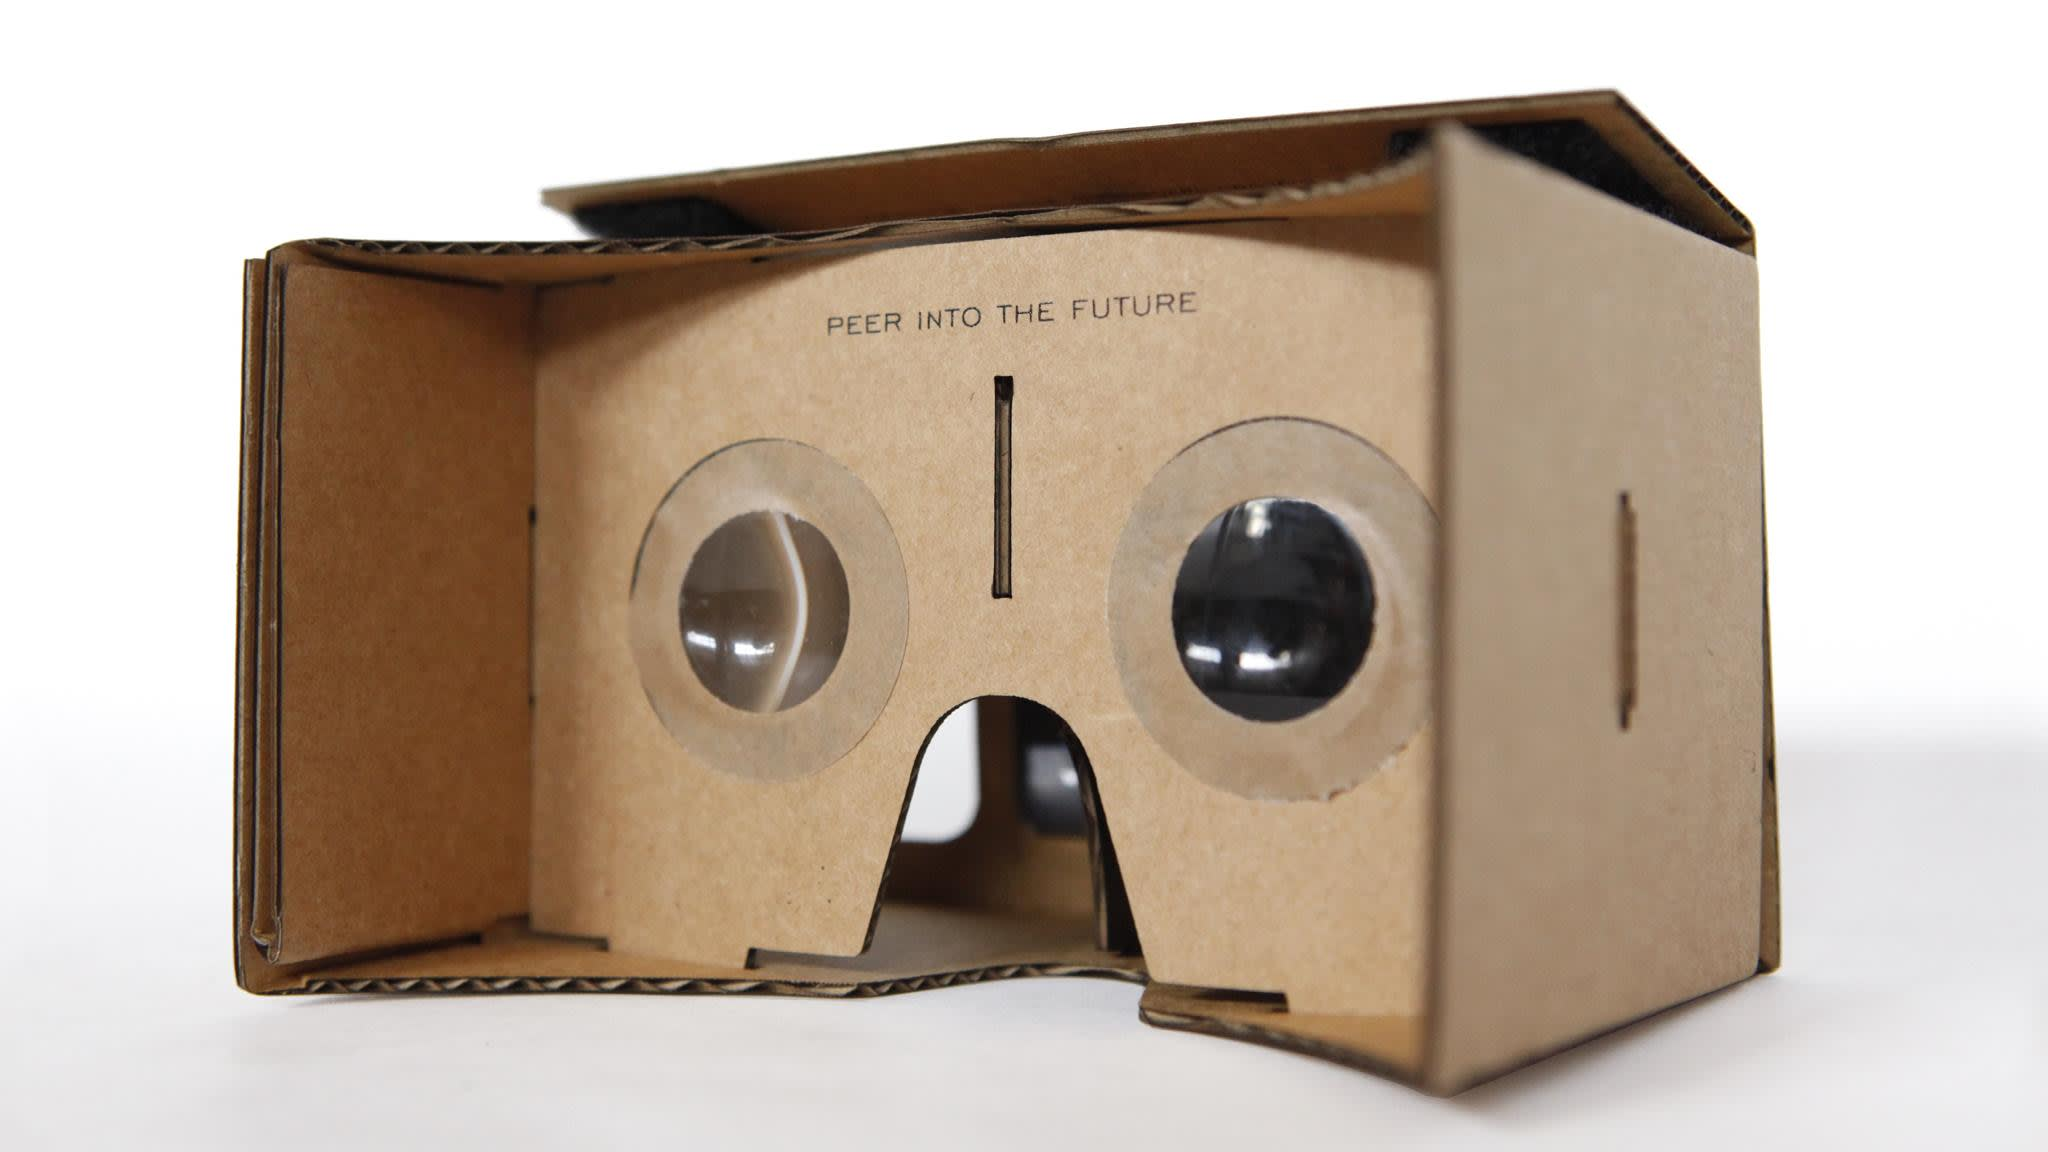 Transported to a new world by Google Cardboard, a $25 VR headset   Financial Times